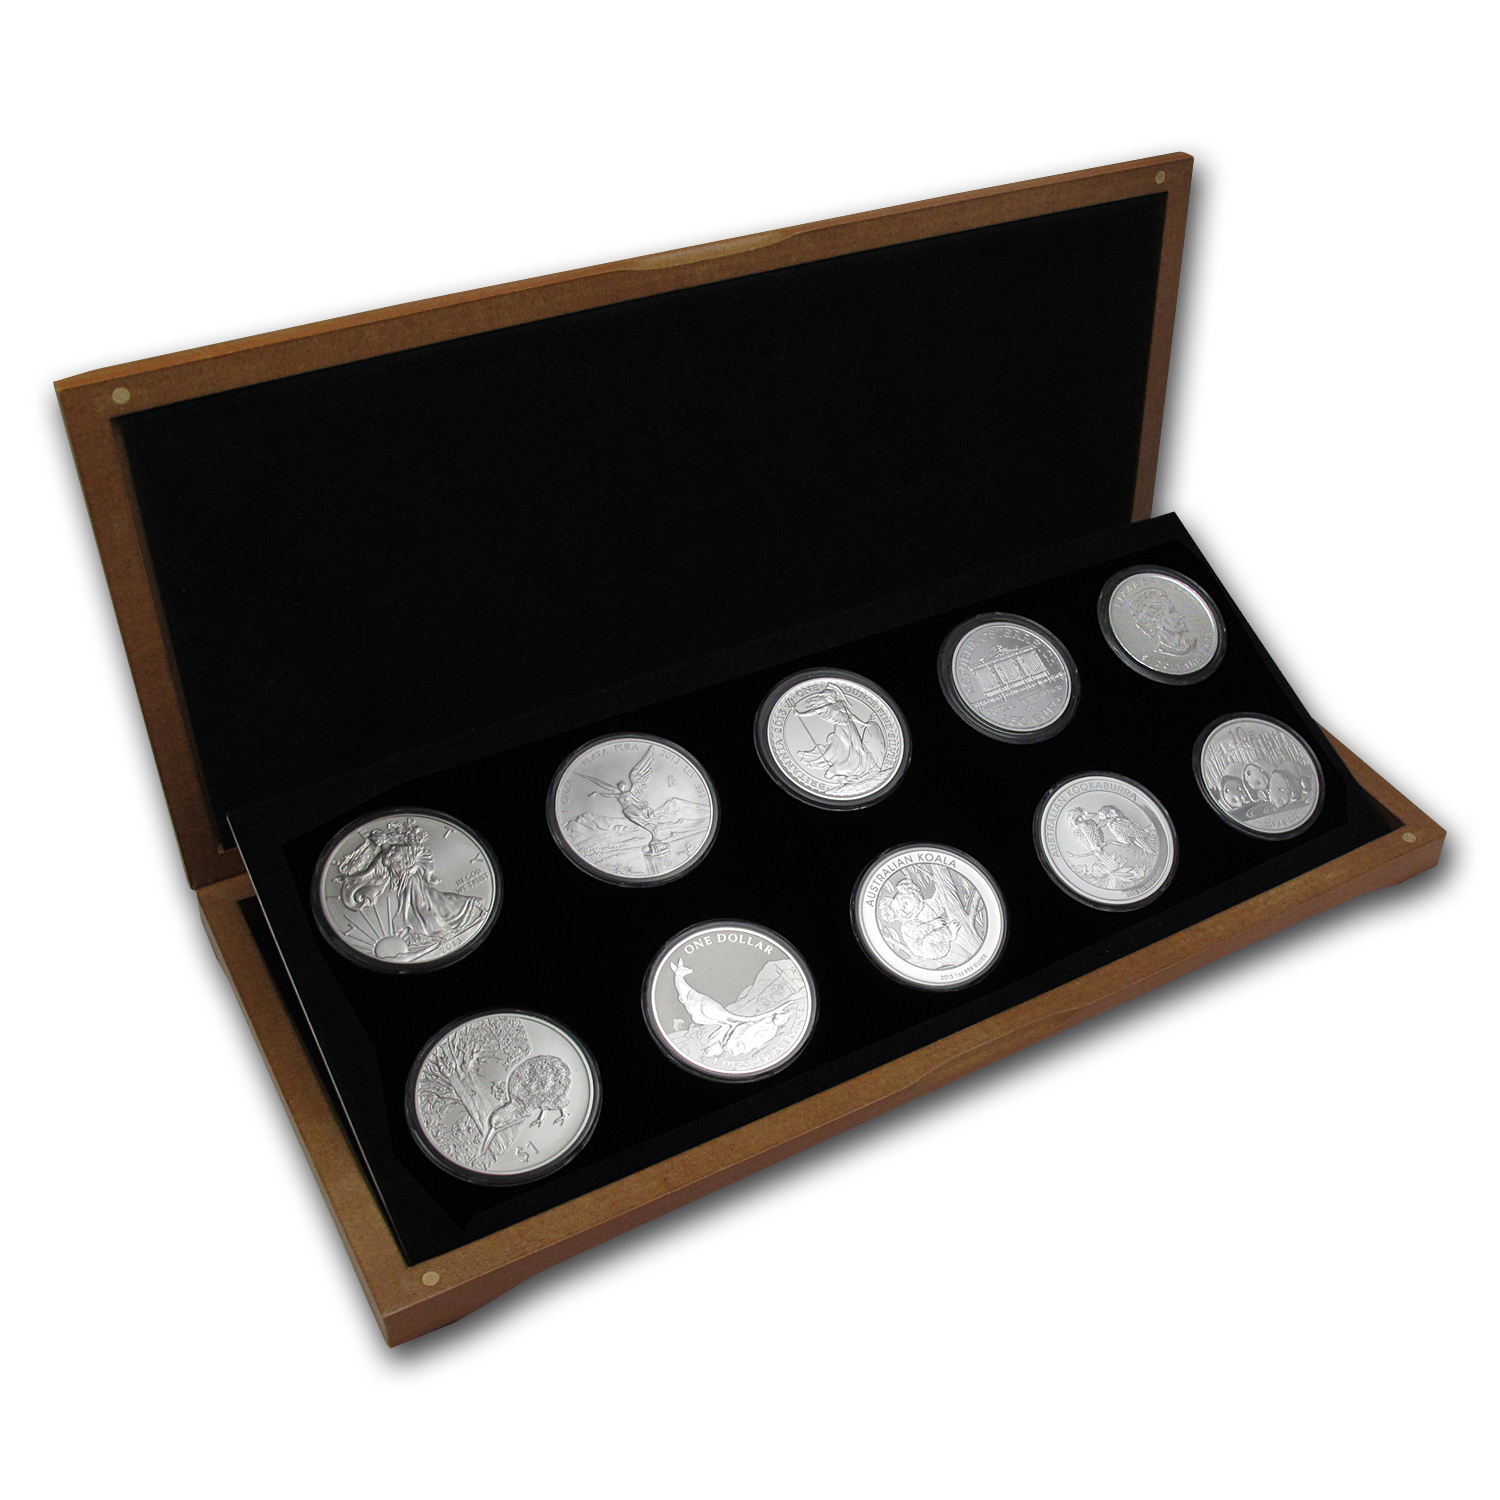 2013 1 oz - 10 Coin Around the World Silver Bullion Set